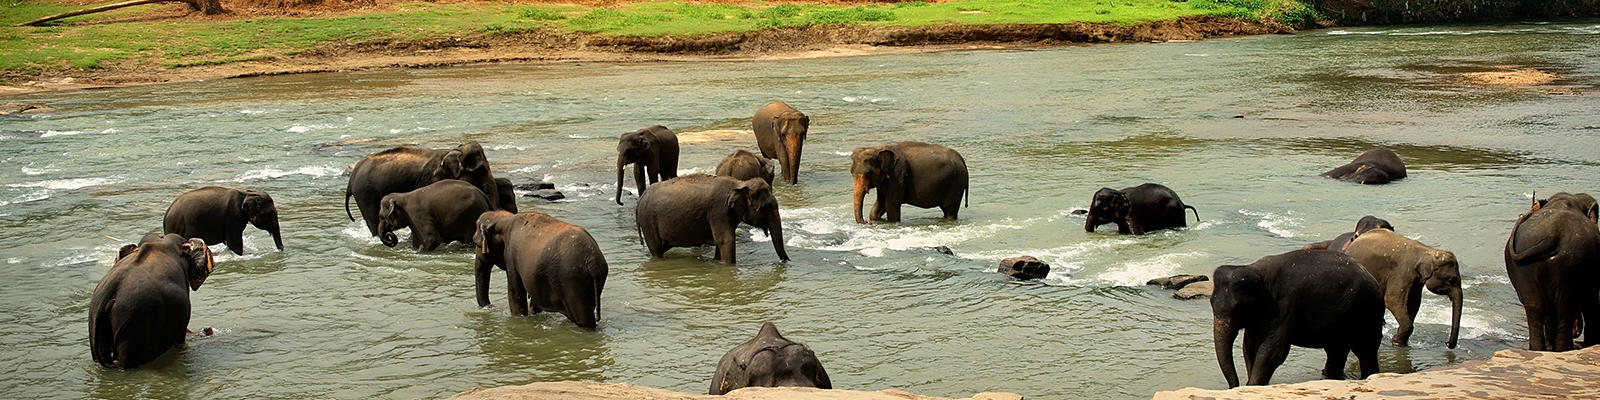 Budget-friendly holiday in Sri Lanka